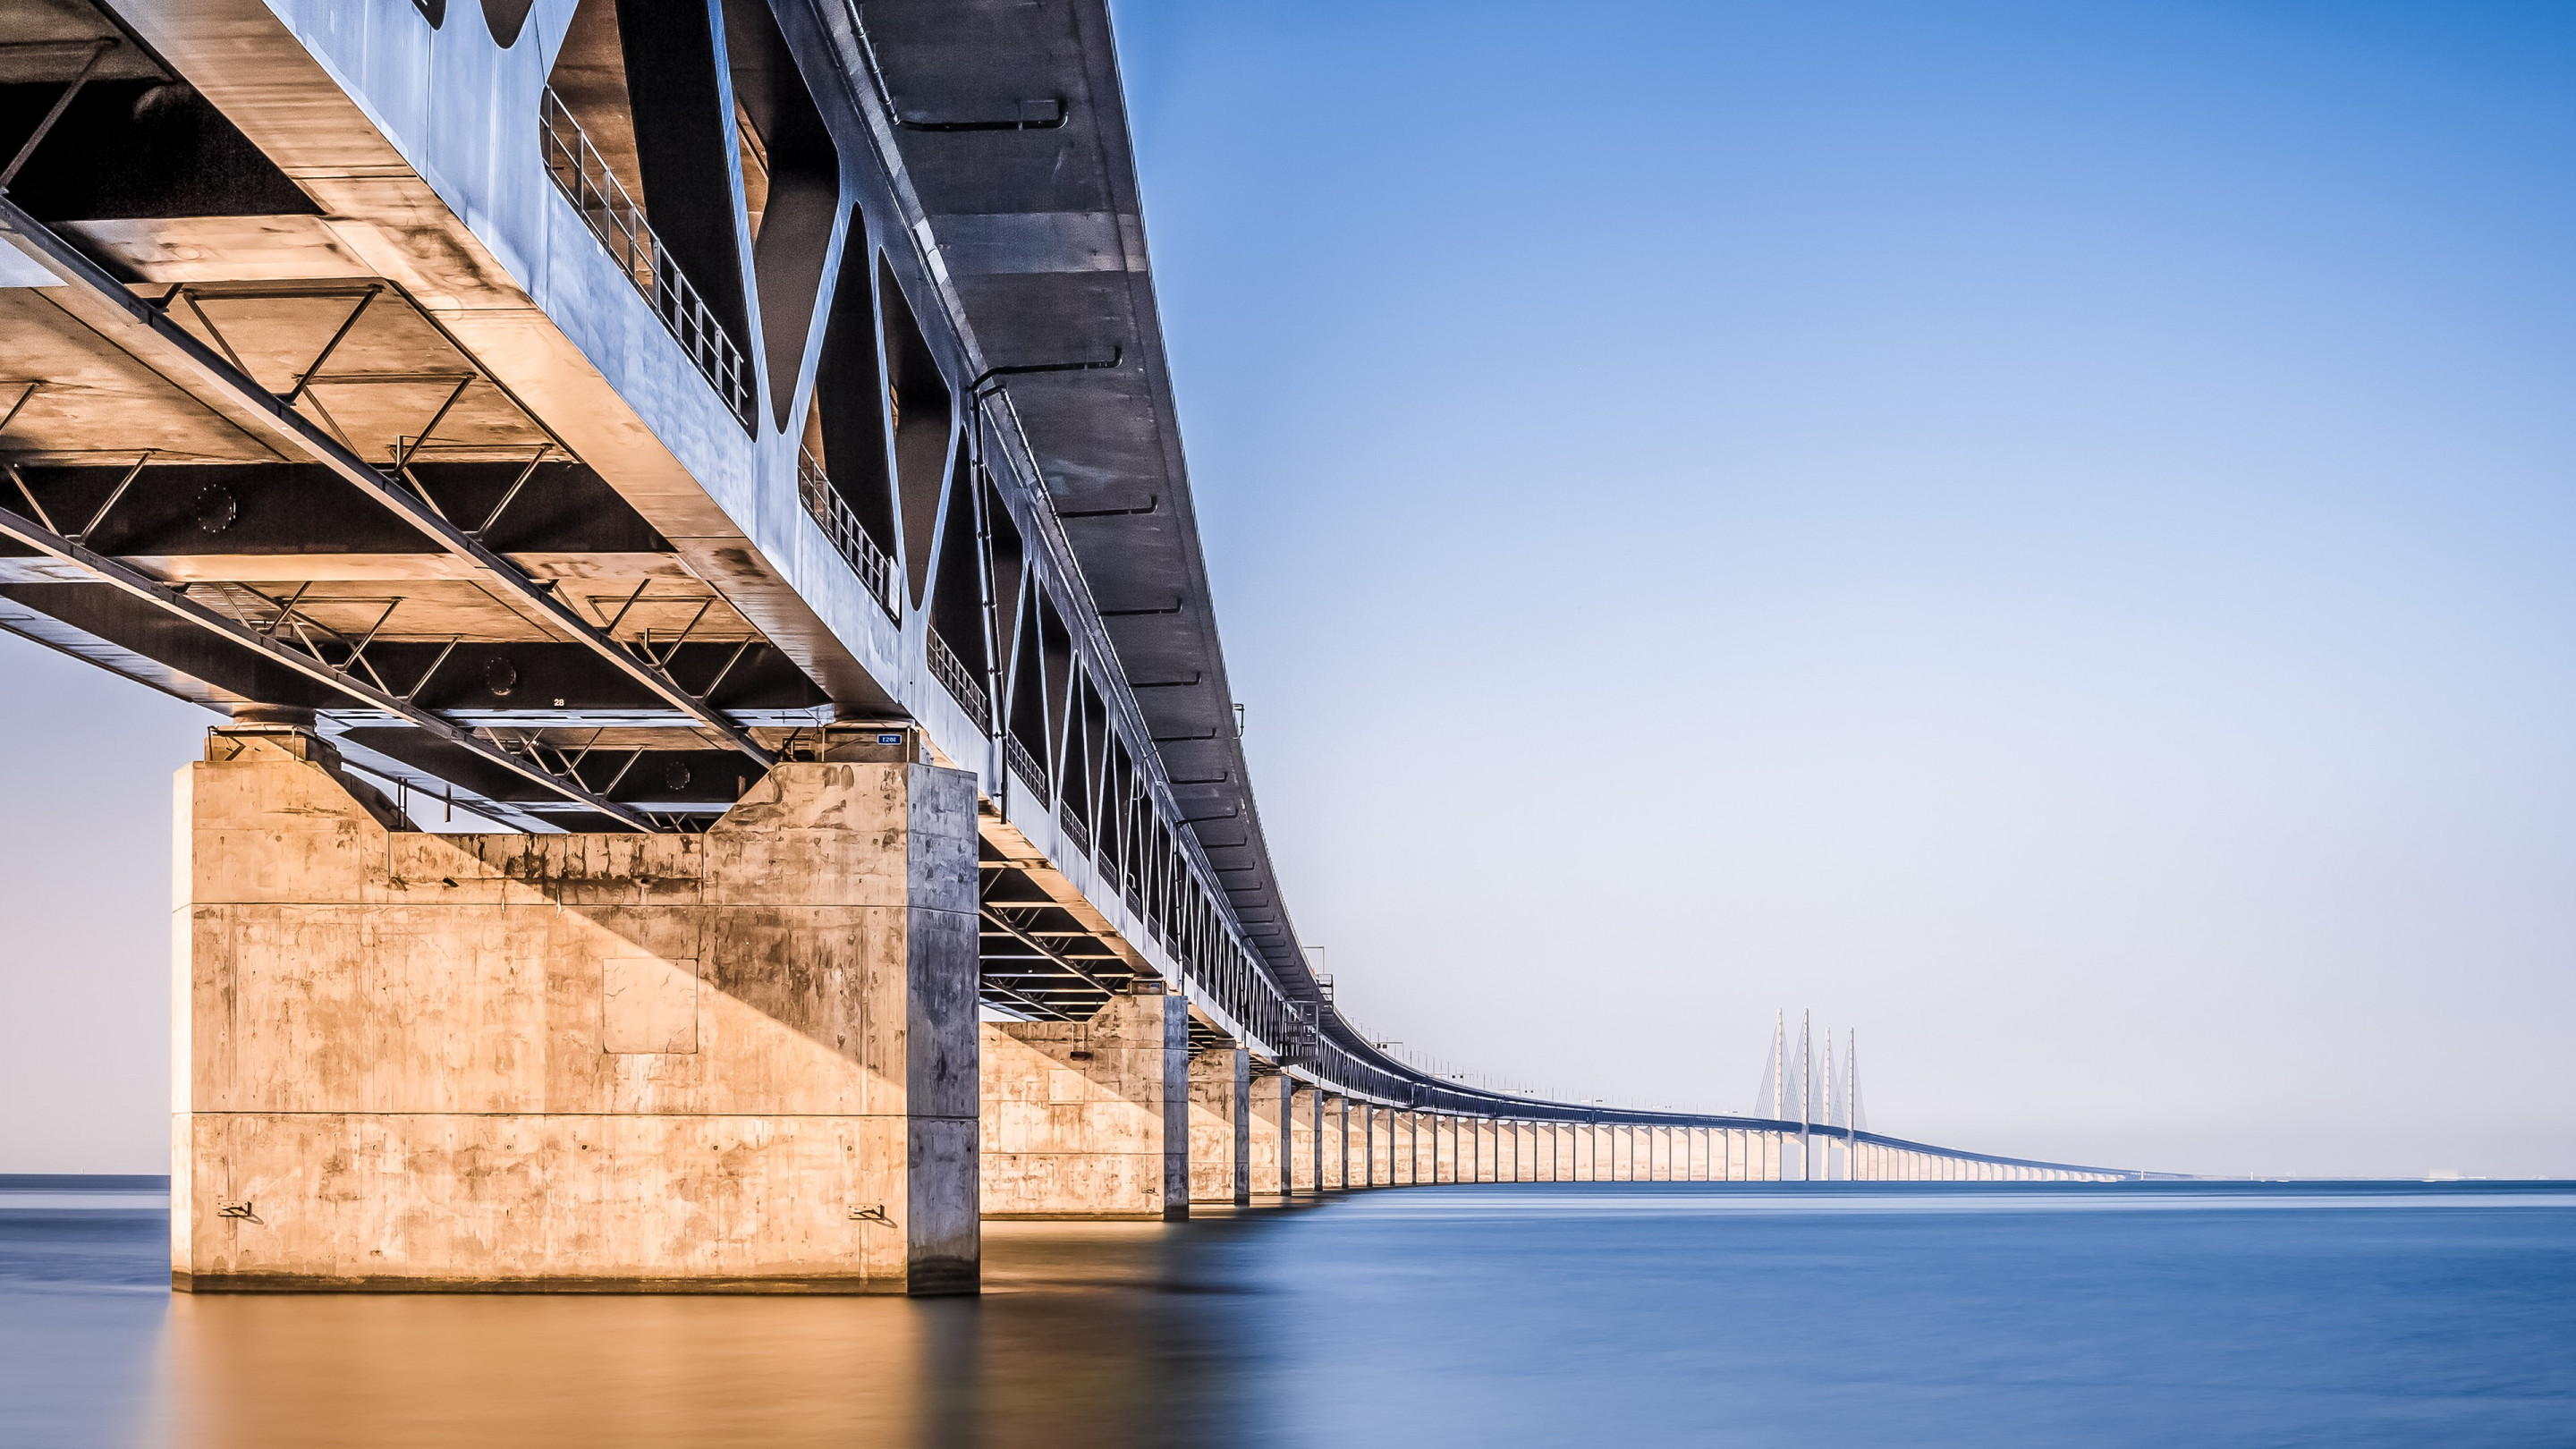 Oresund Bridge wallpaper 2880x1620